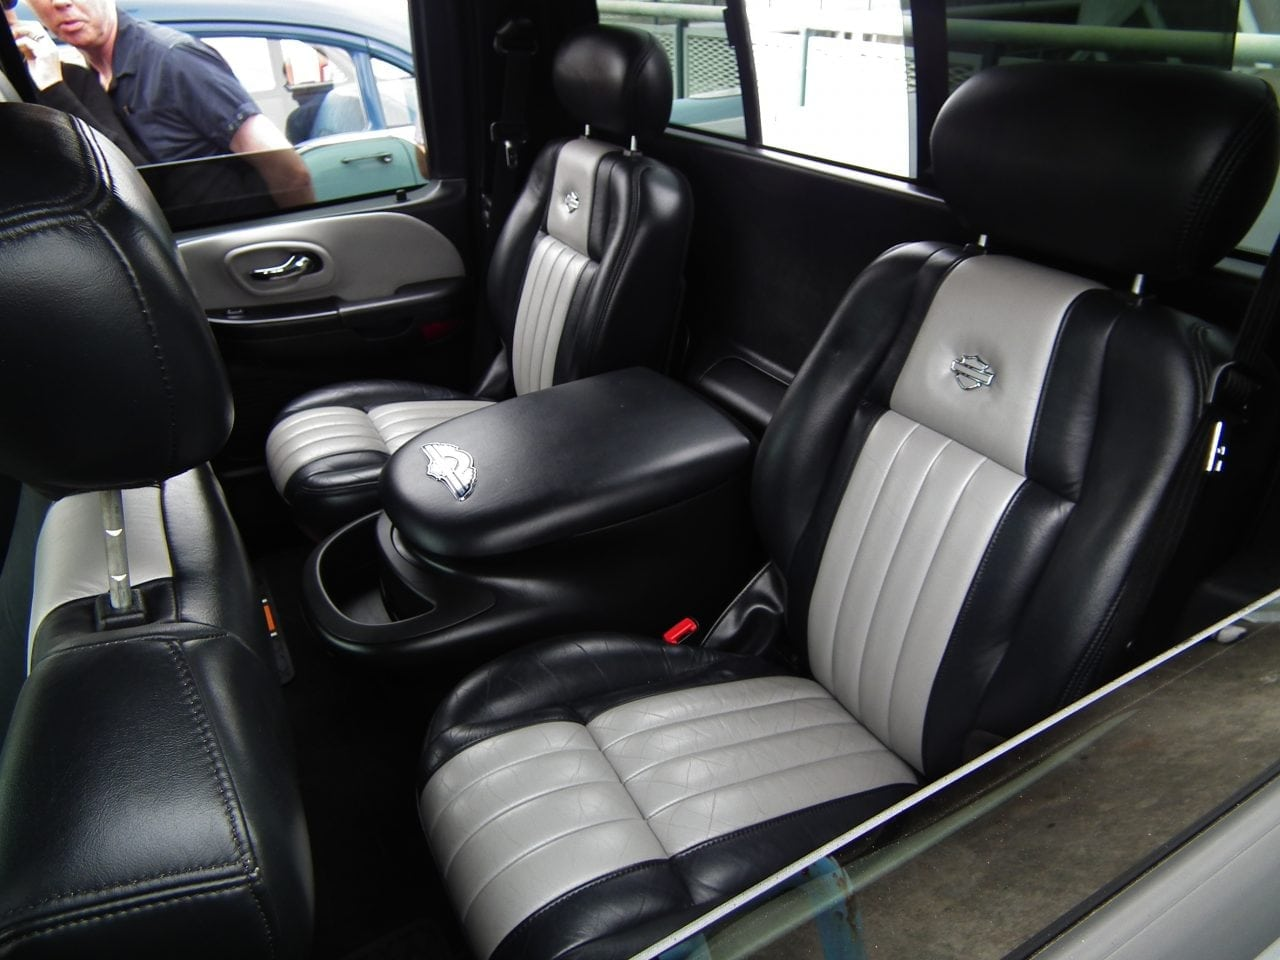 Tips to Help Protect Your Truck's Interior